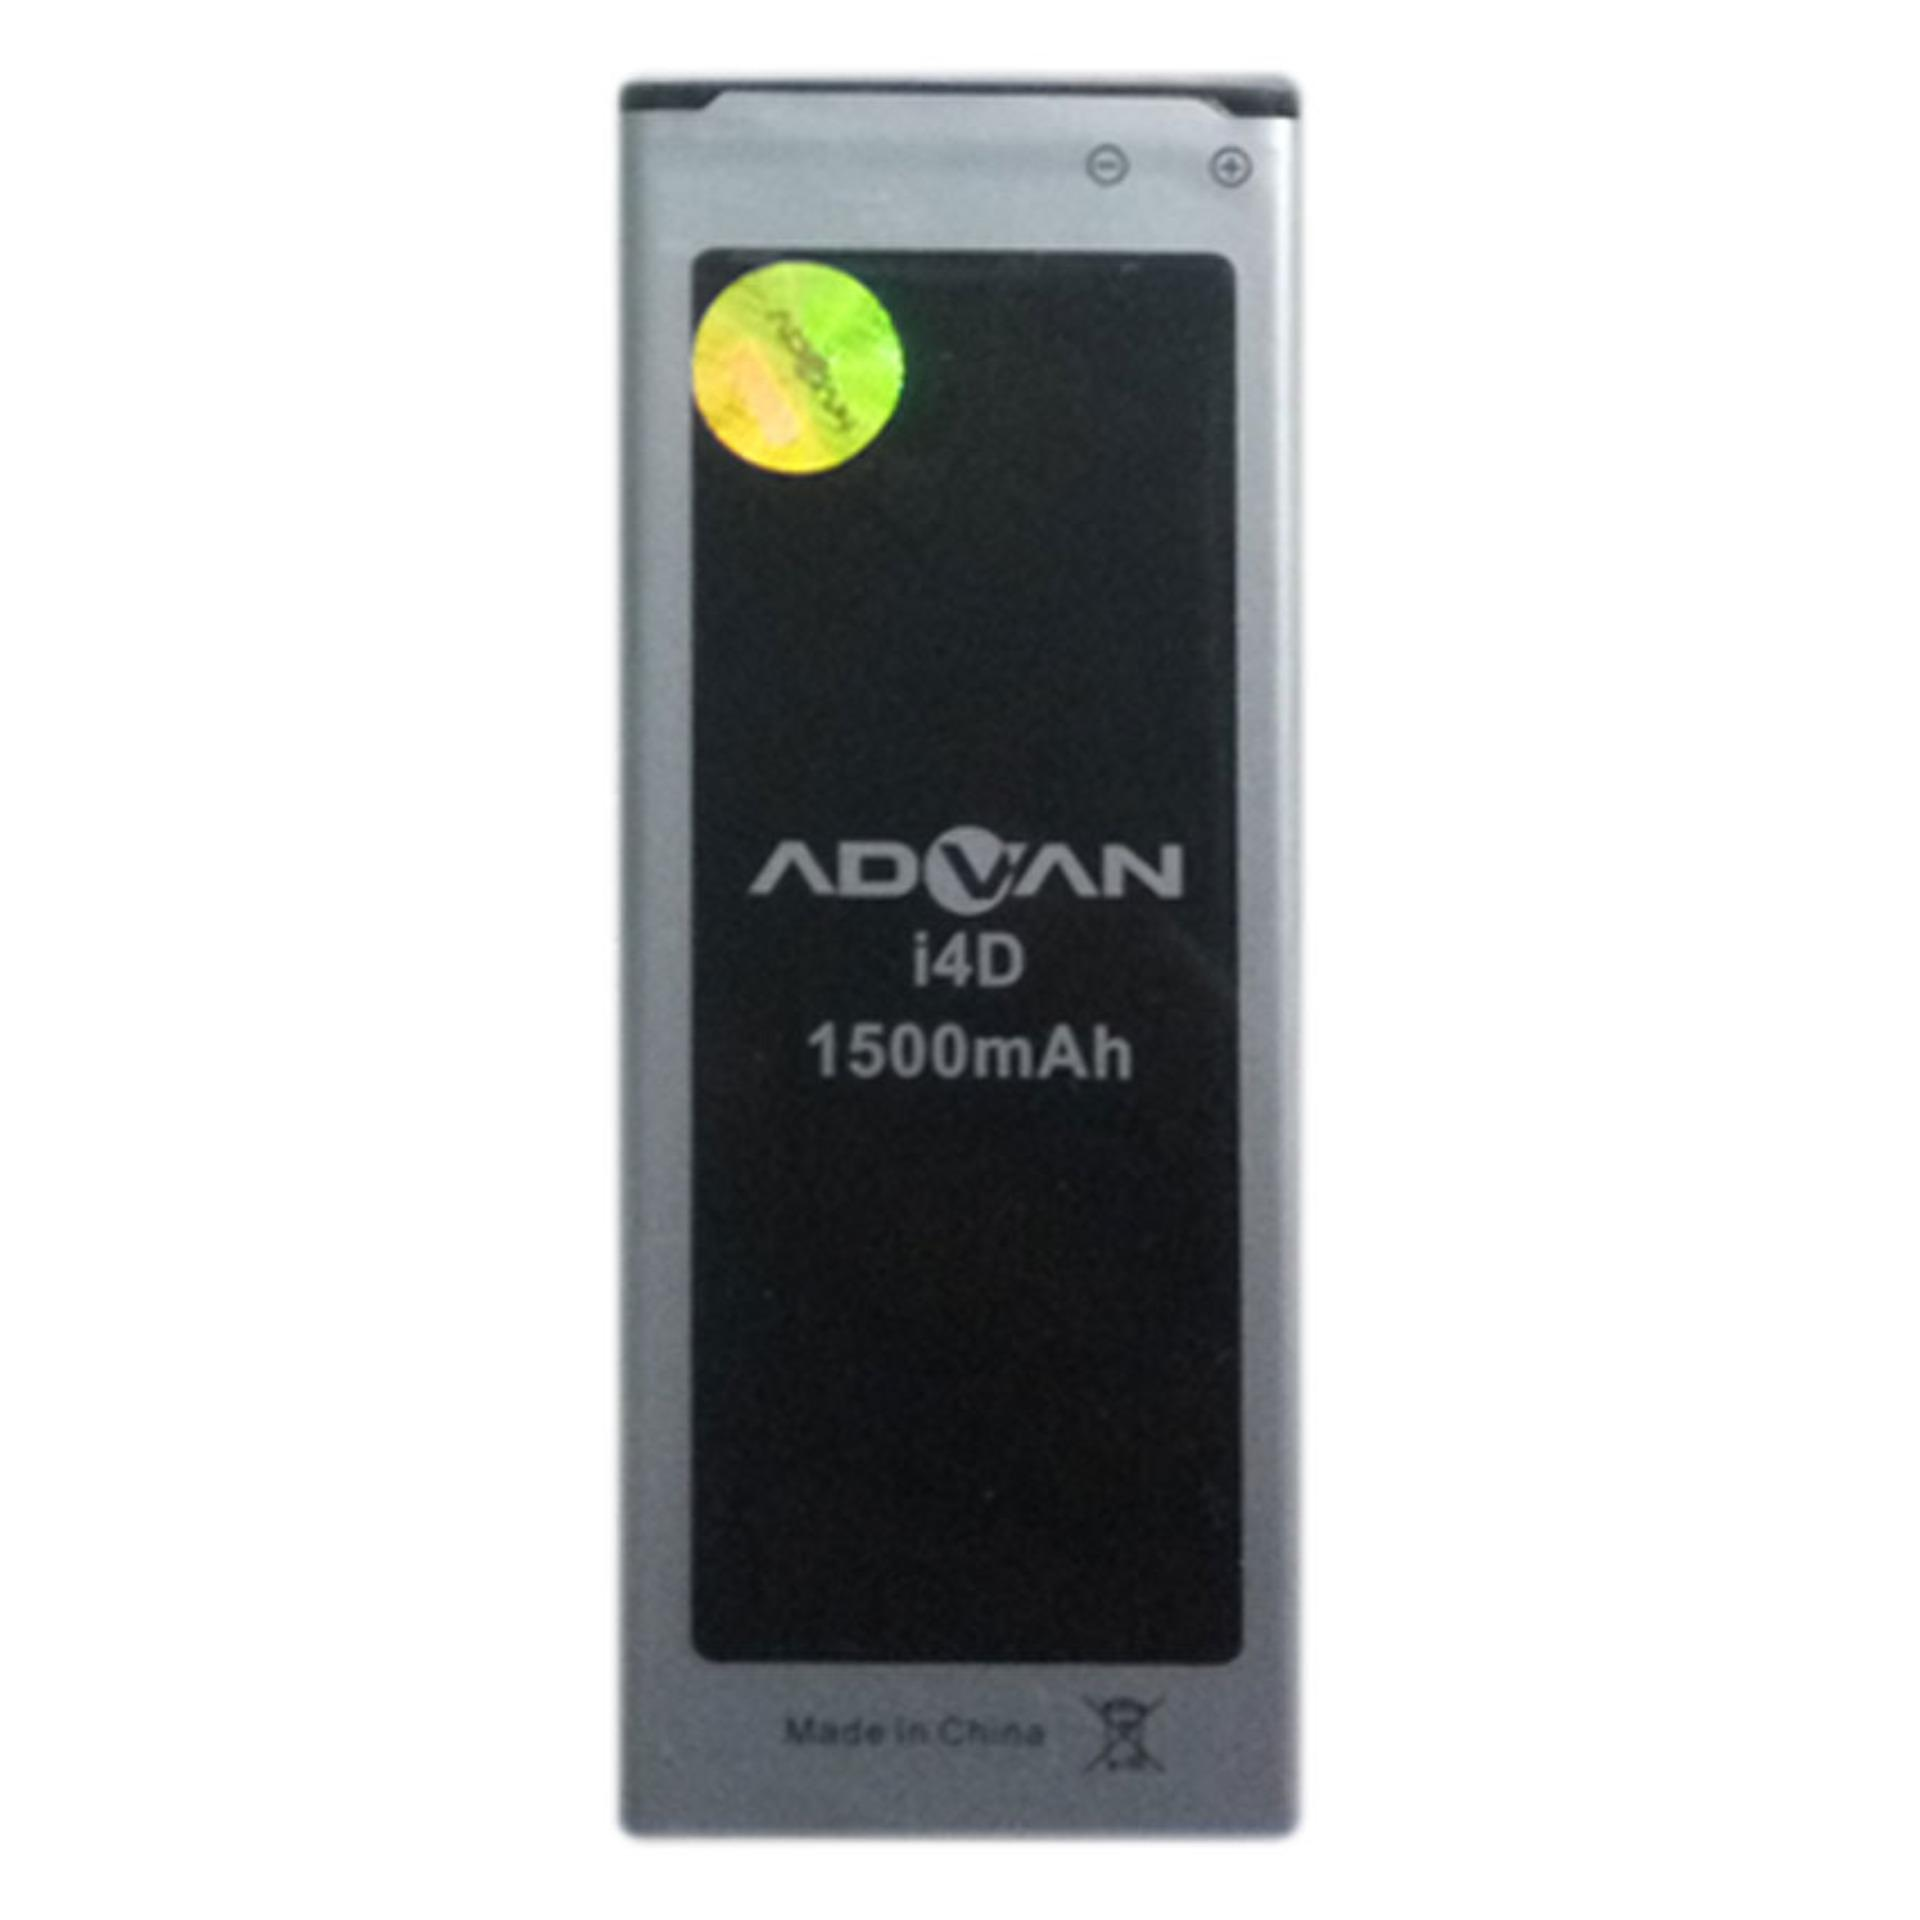 Advan Original Battery - Baterai Original Advan i4D - 1500 mAh